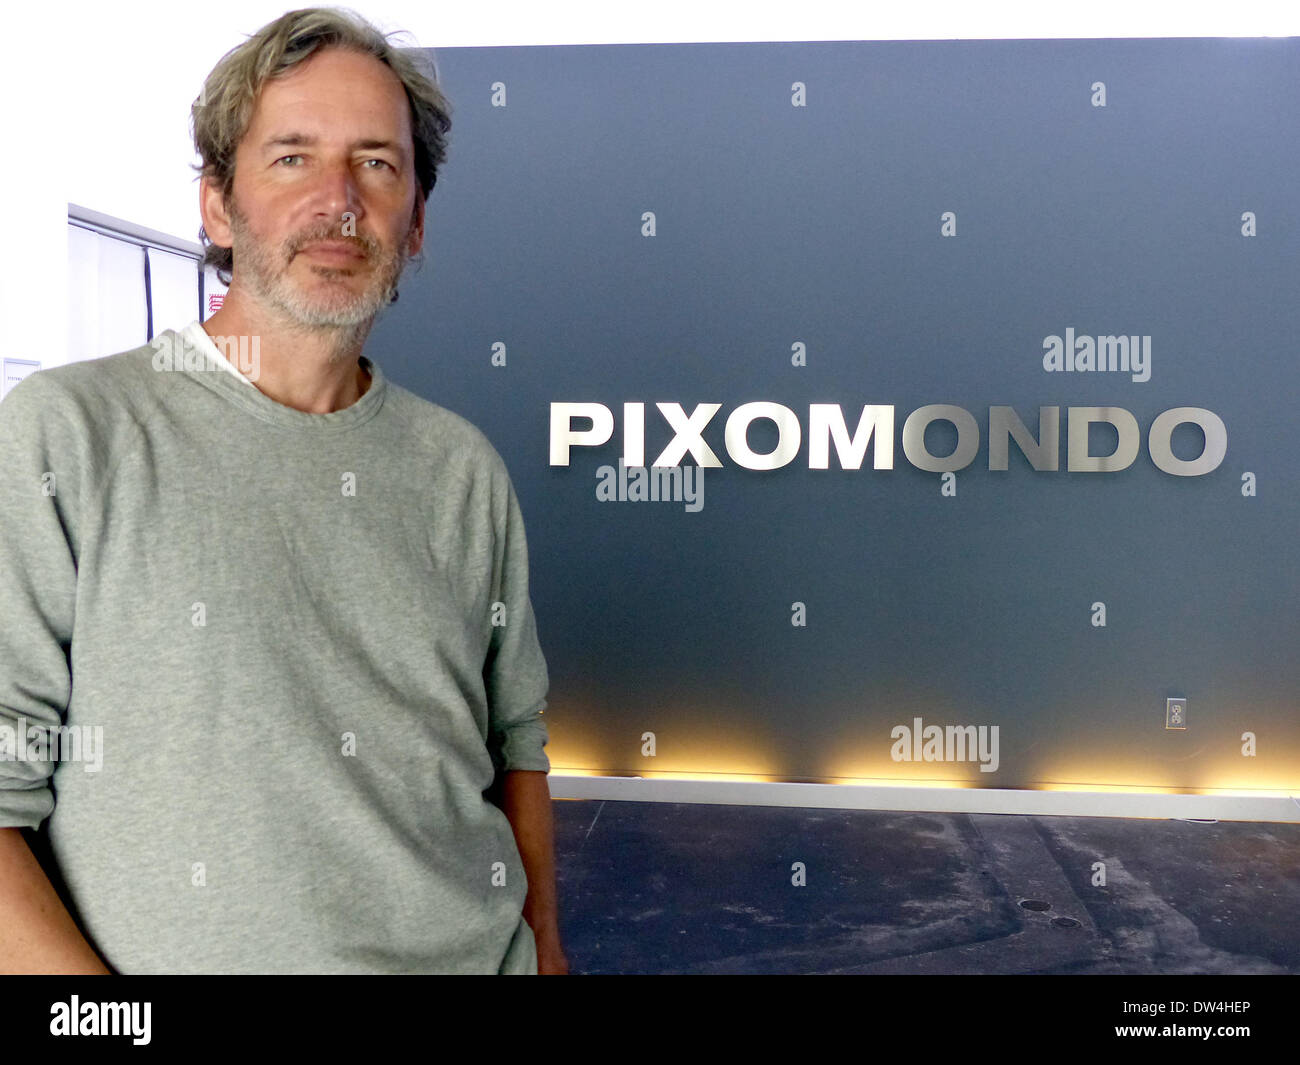 German Thilo Kuther, CEO of special effects company Pixomondo, stands next to the logo of his company in his studion in Santa Monica, USA, 25February 2014. The German effects company could when an Oscar for their work on the science-fiction film 'StarTrek: Into Darkness.' Photo: Barbara Munker - Stock Image